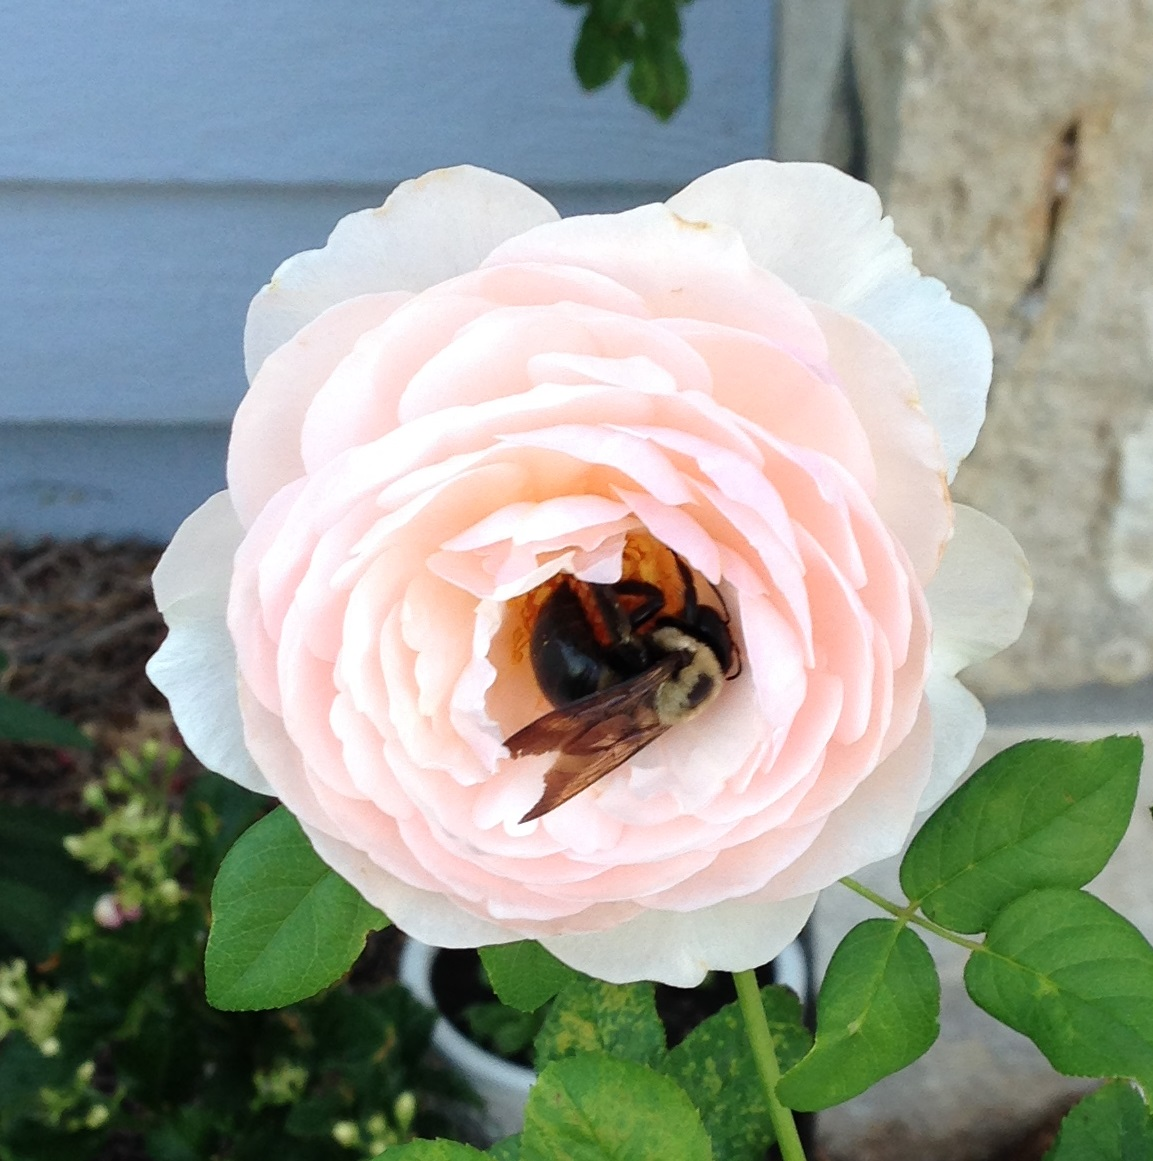 2014-07-21 09.21.17 heritage rose with bumblebee close